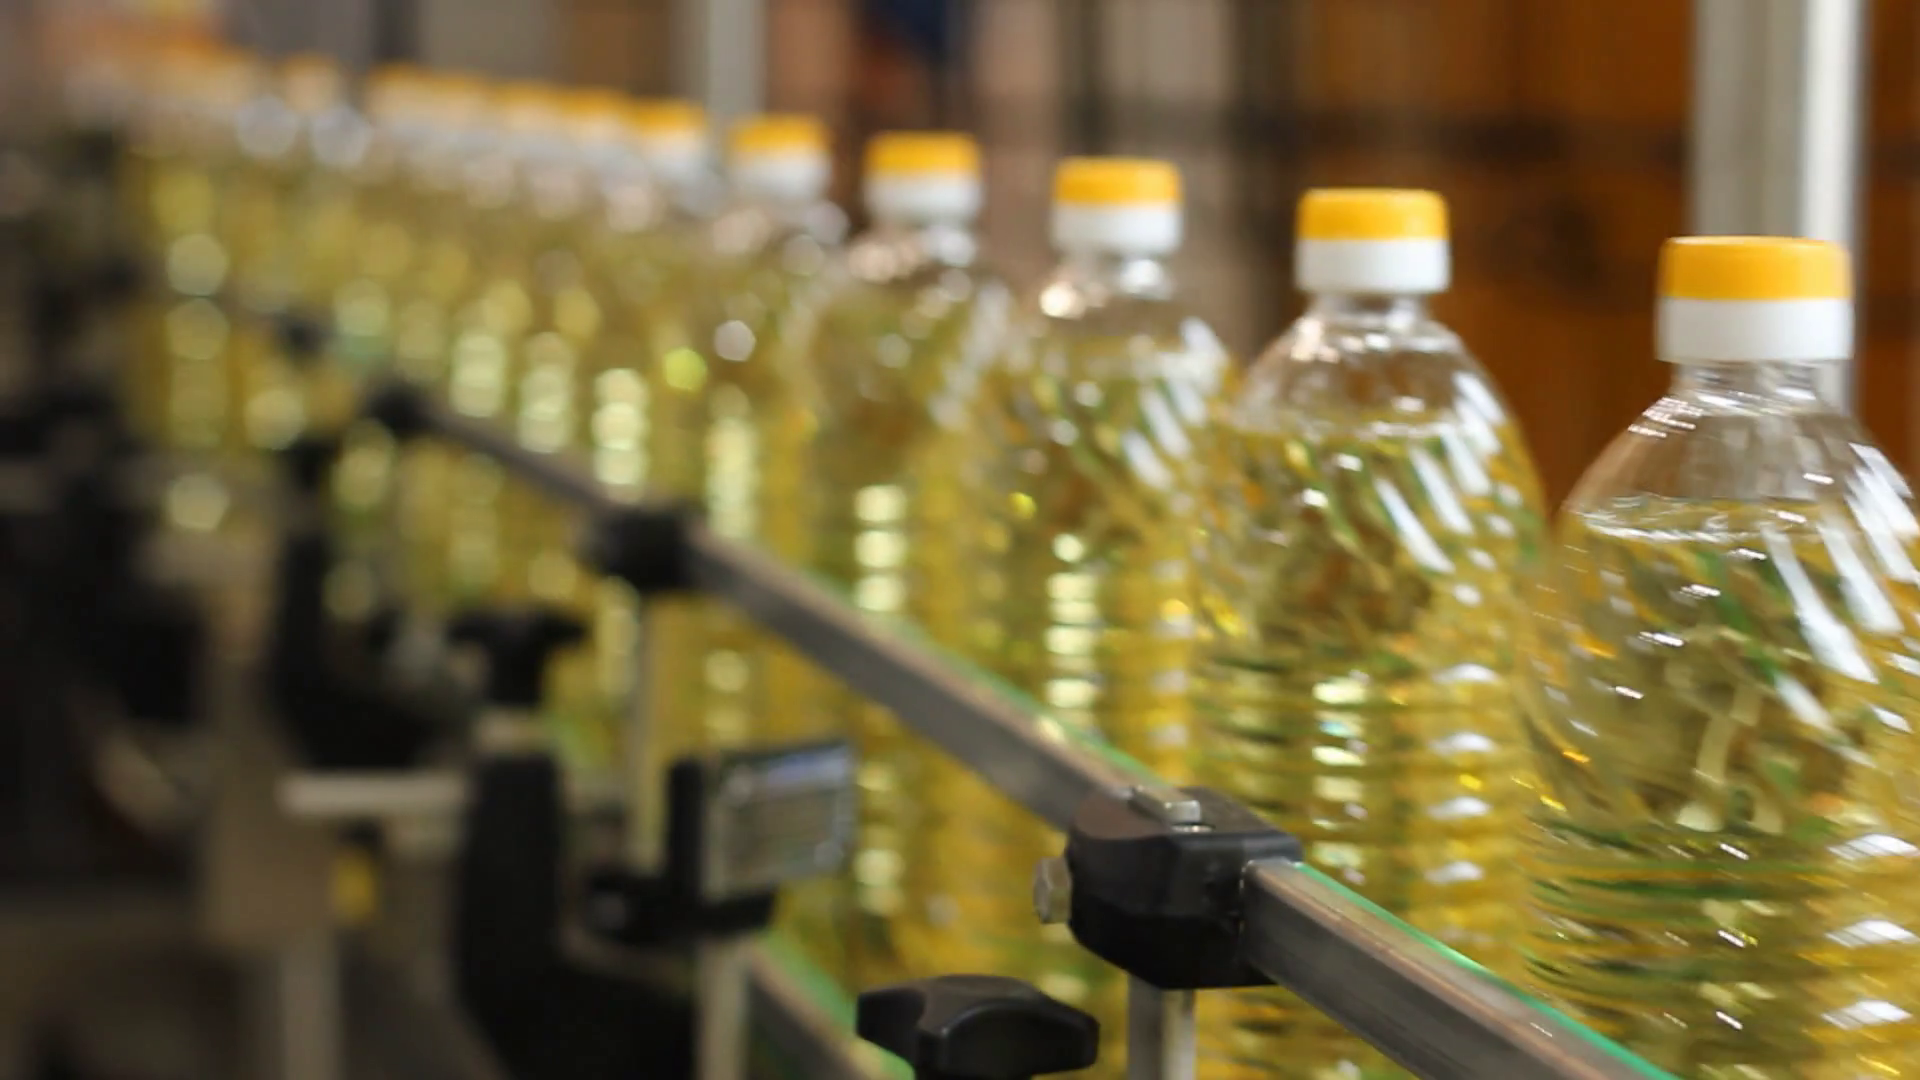 YNY Technology's Remote Service Preserves the Supply of Edible Oil in Kenya